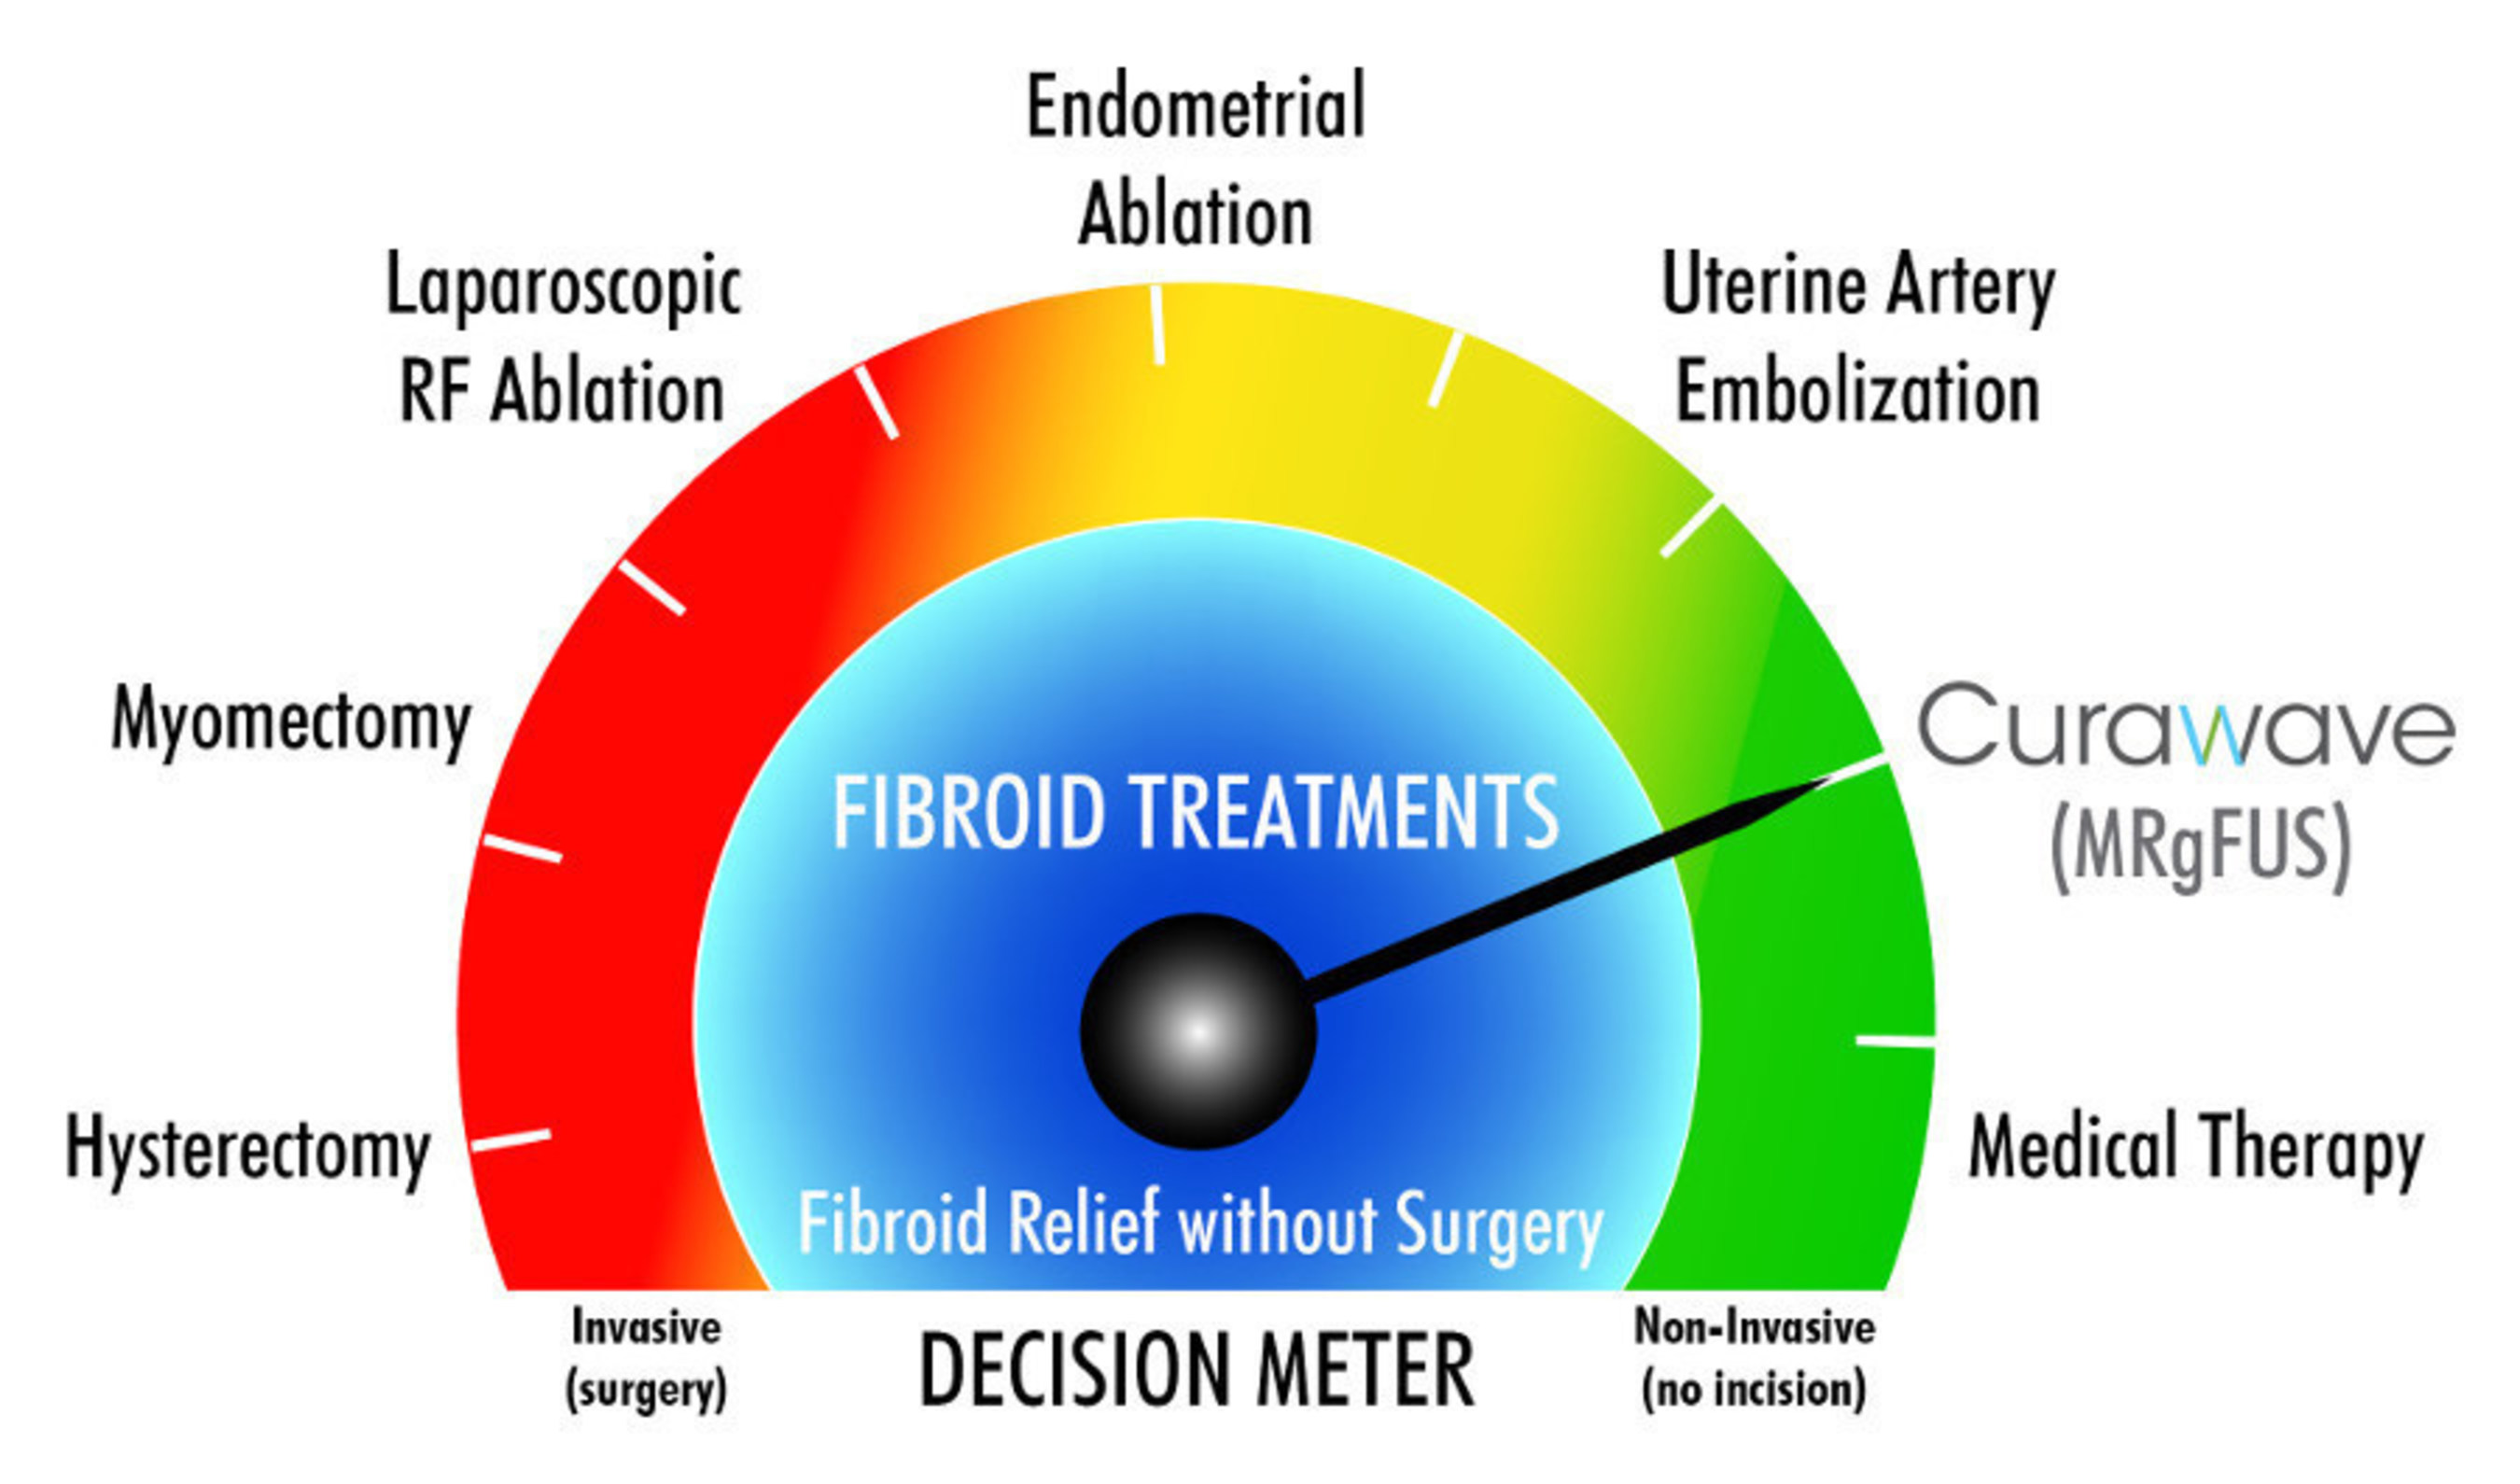 Therapy Options for Uterine Fibroids